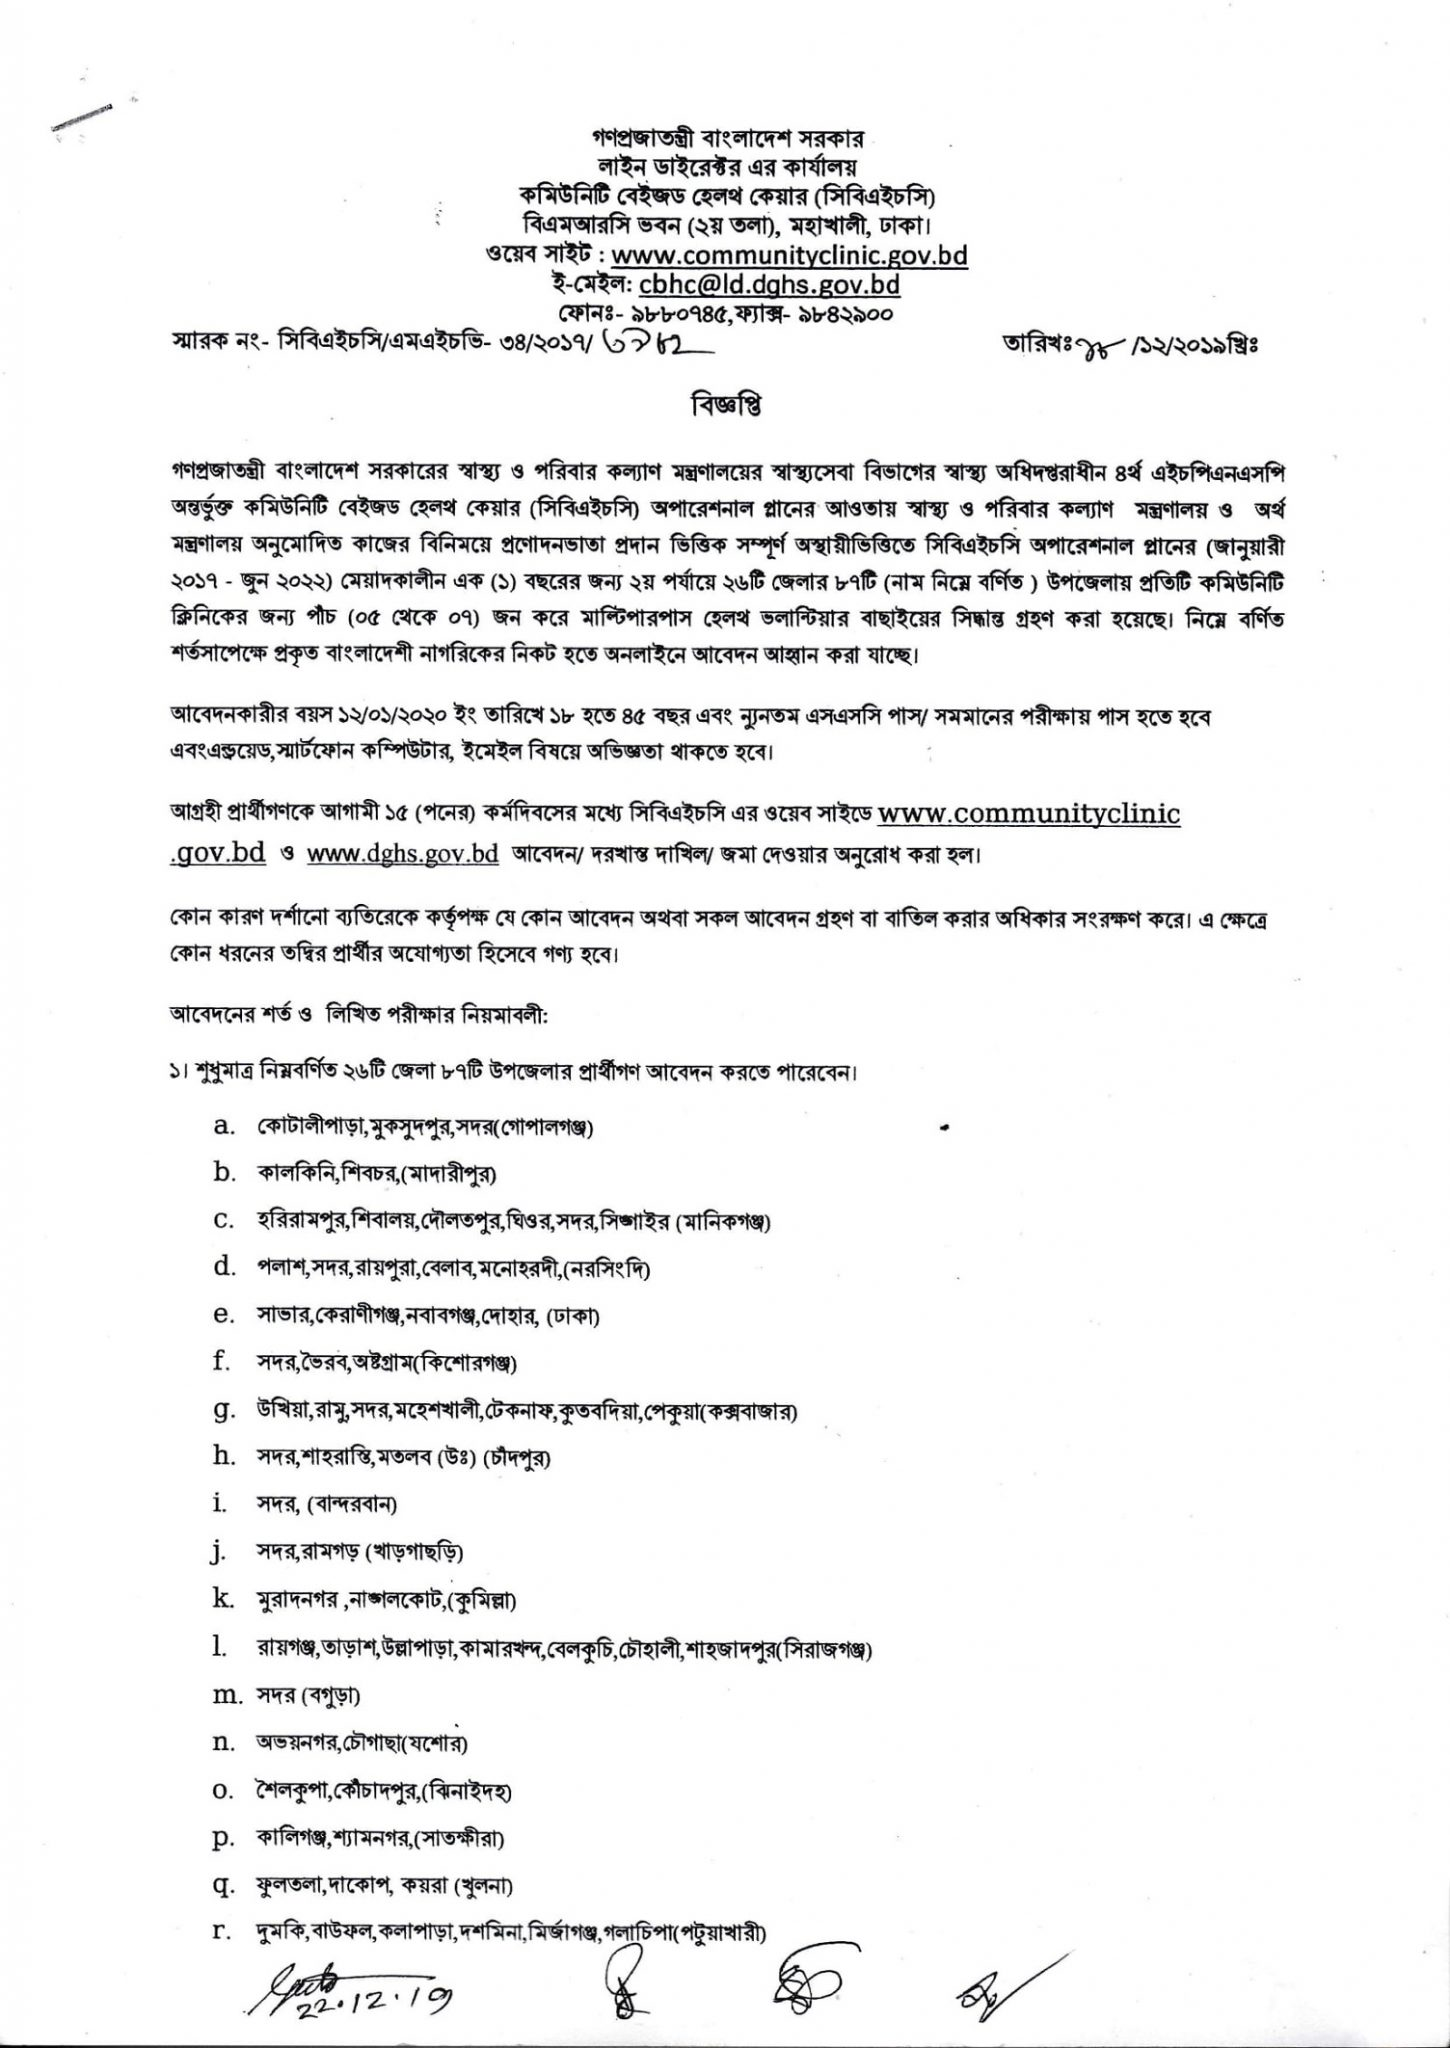 Bangladesh Community Health Center Job Circular 2019